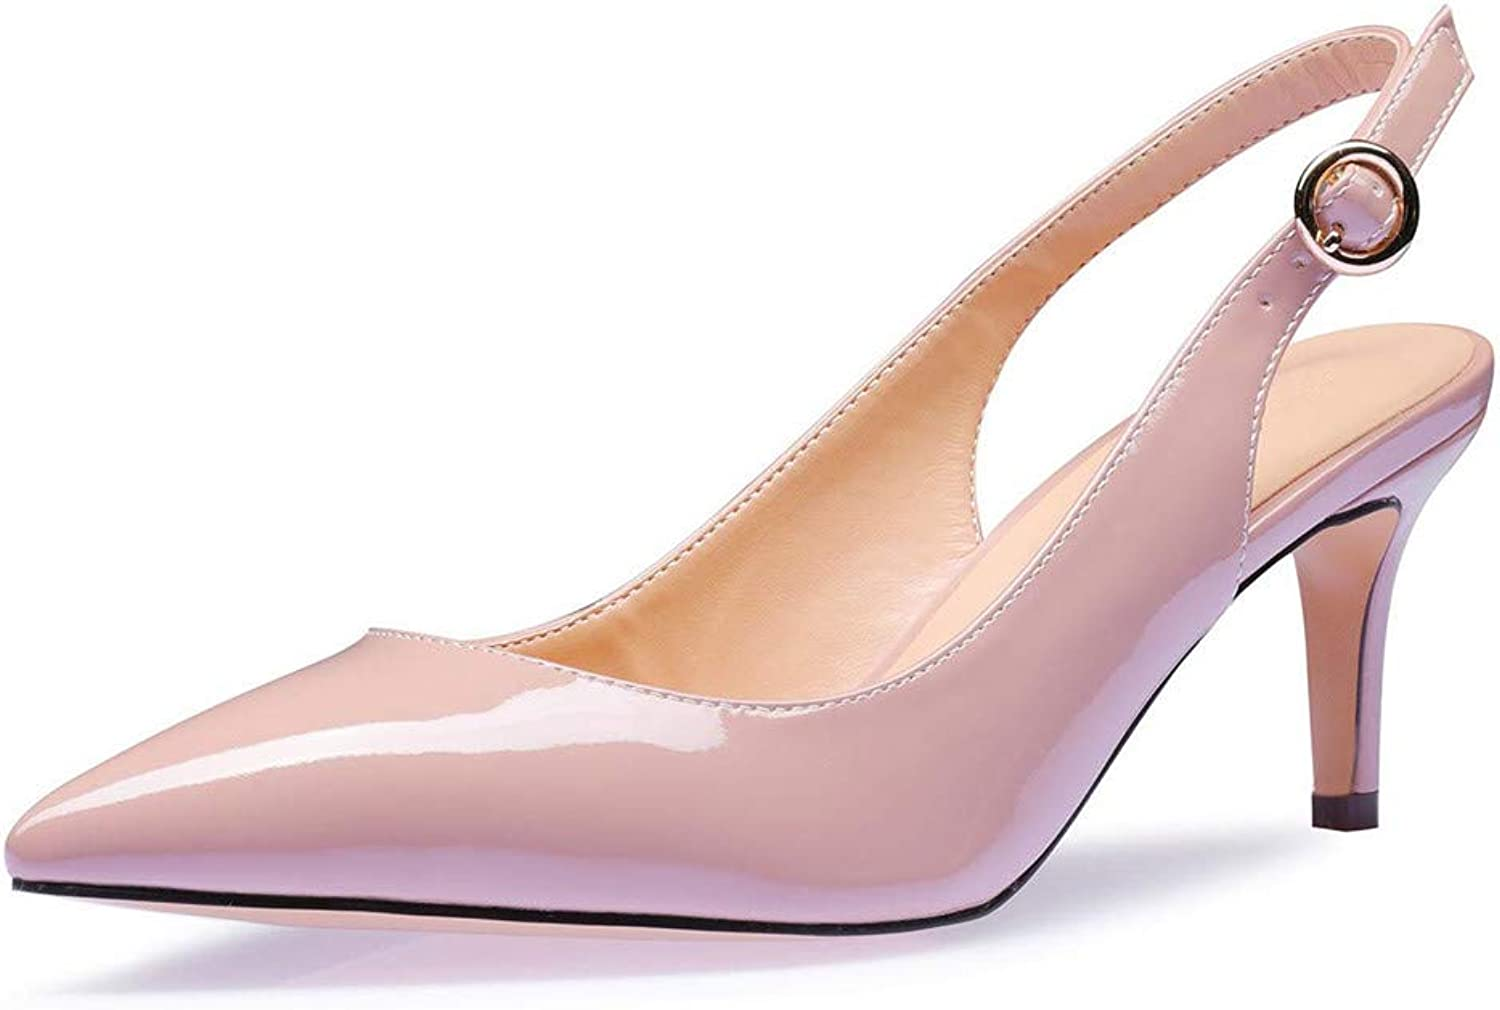 UMEXI Women Pointy Toe Slingback Kittent Heel Sandals Evening Buckle Pumps Dress shoes Nude